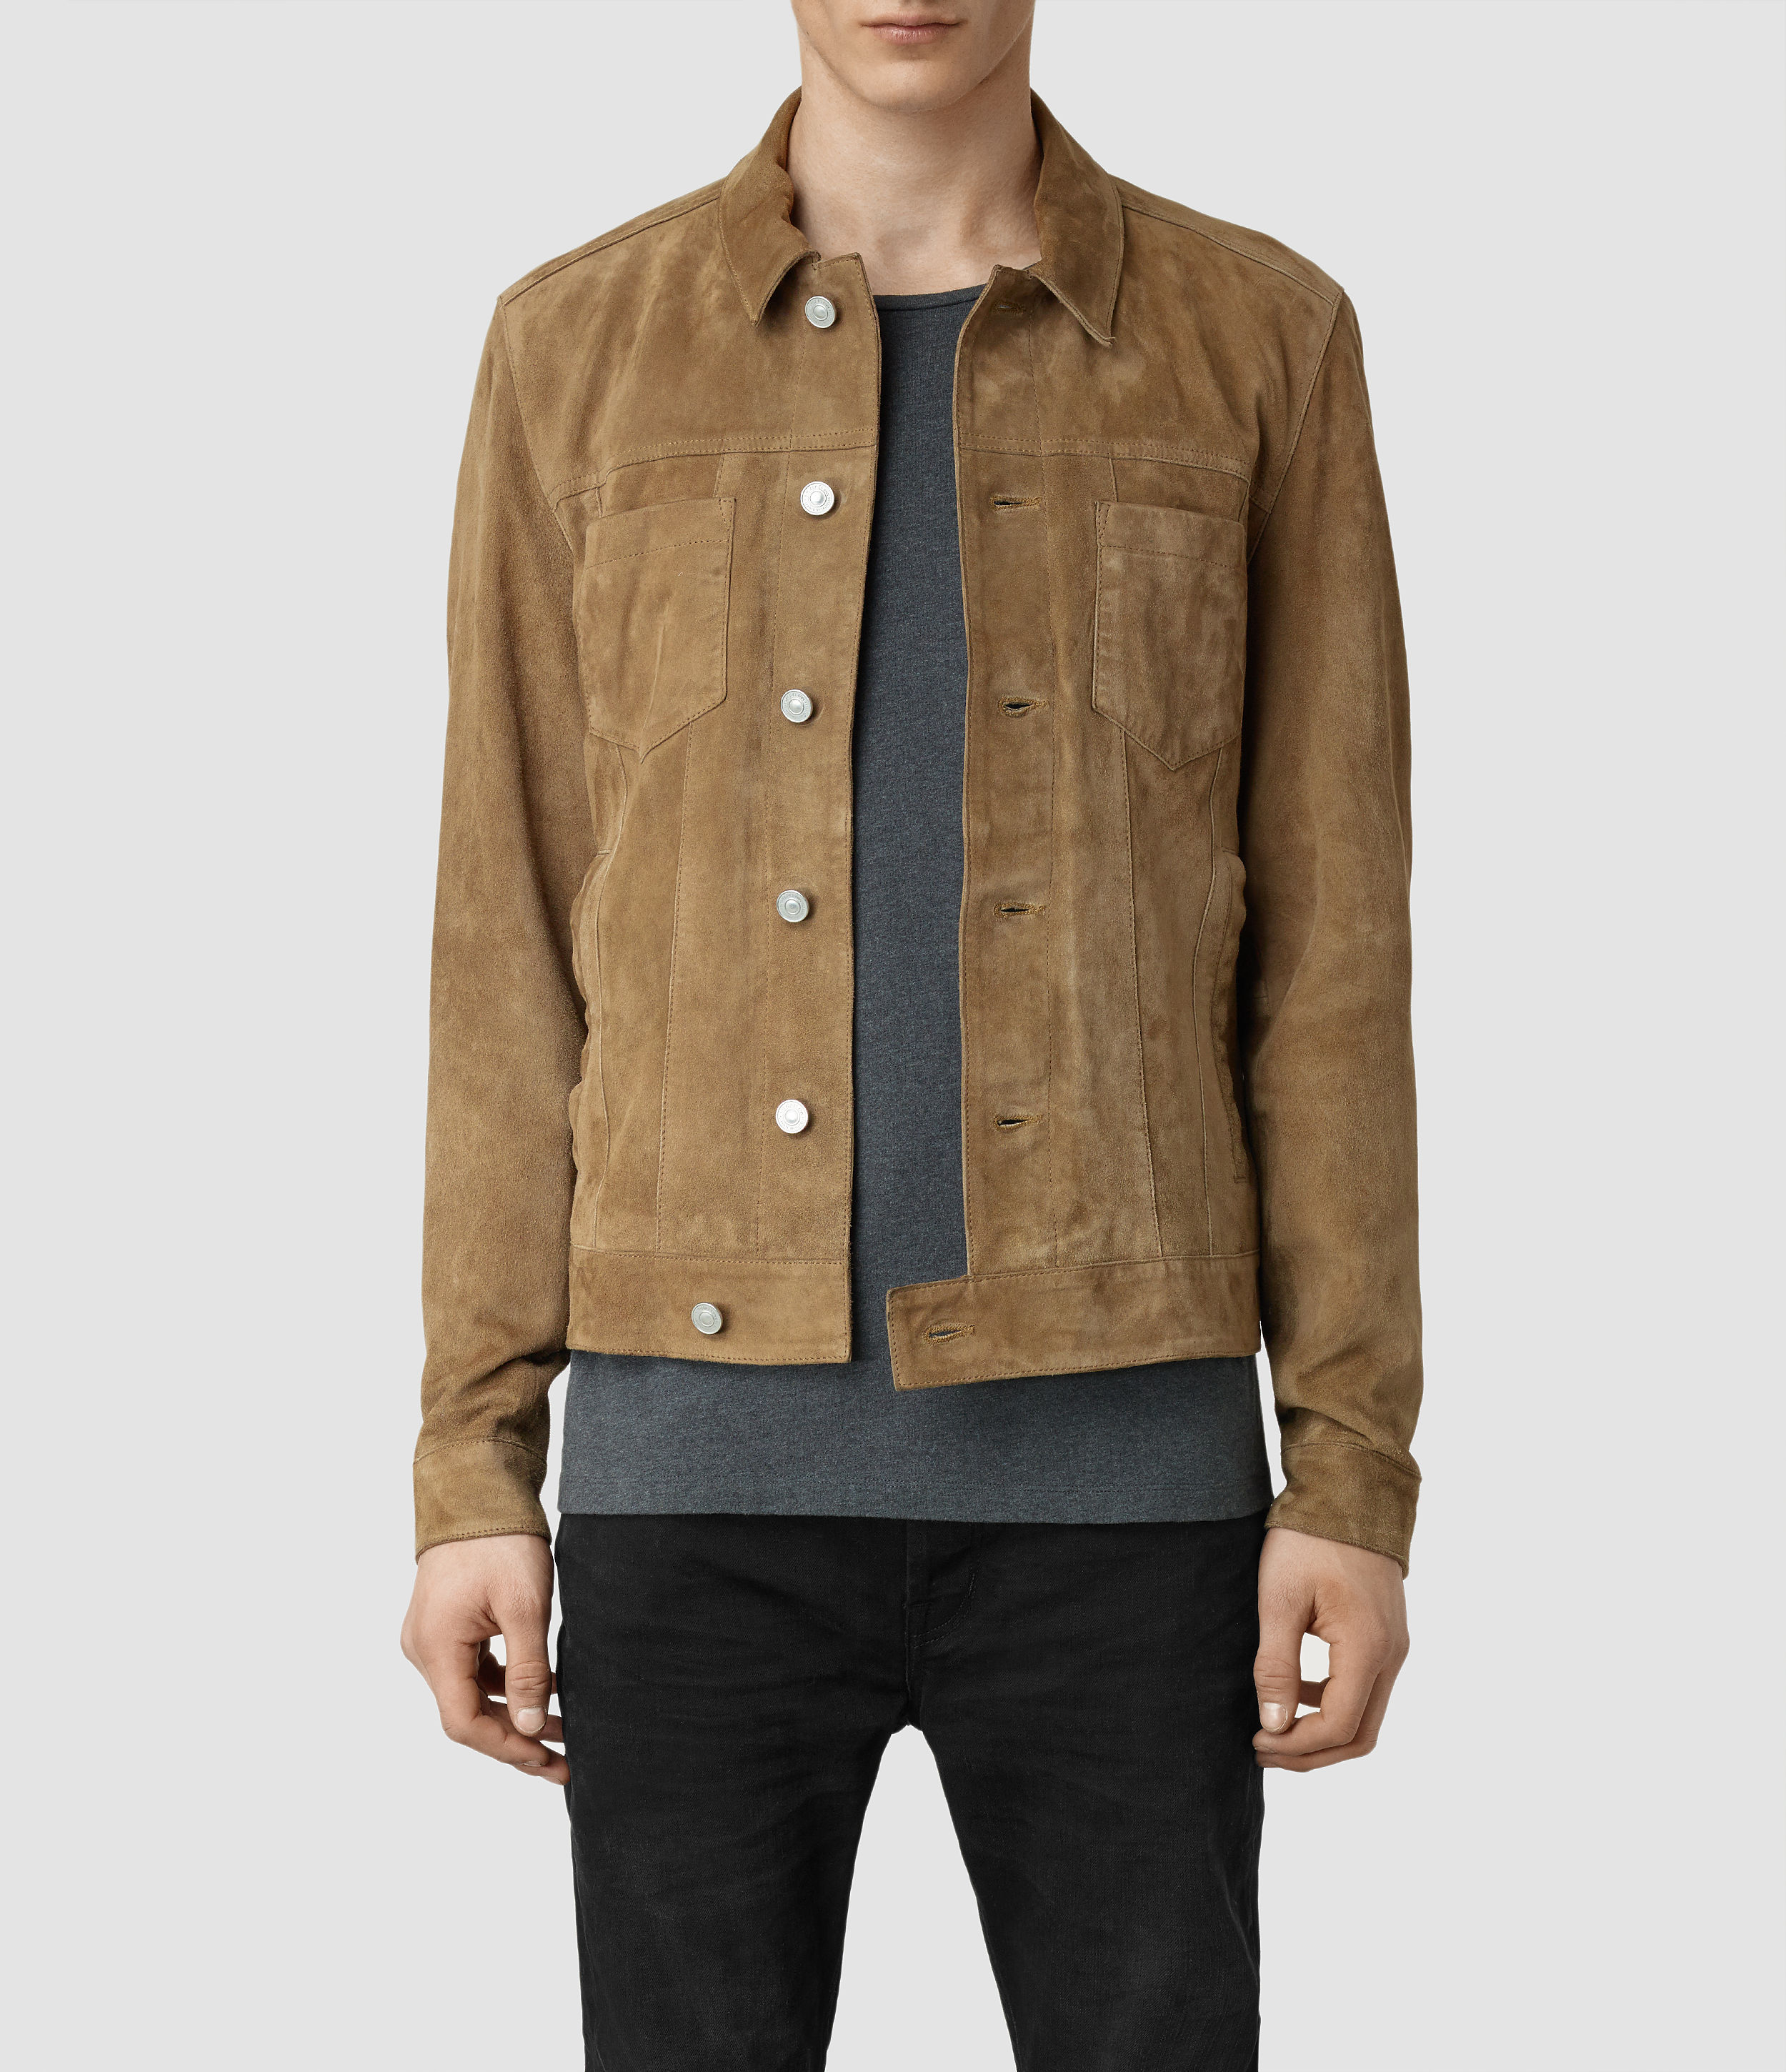 Lyst Allsaints Ocarno Suede Jacket In Natural For Men